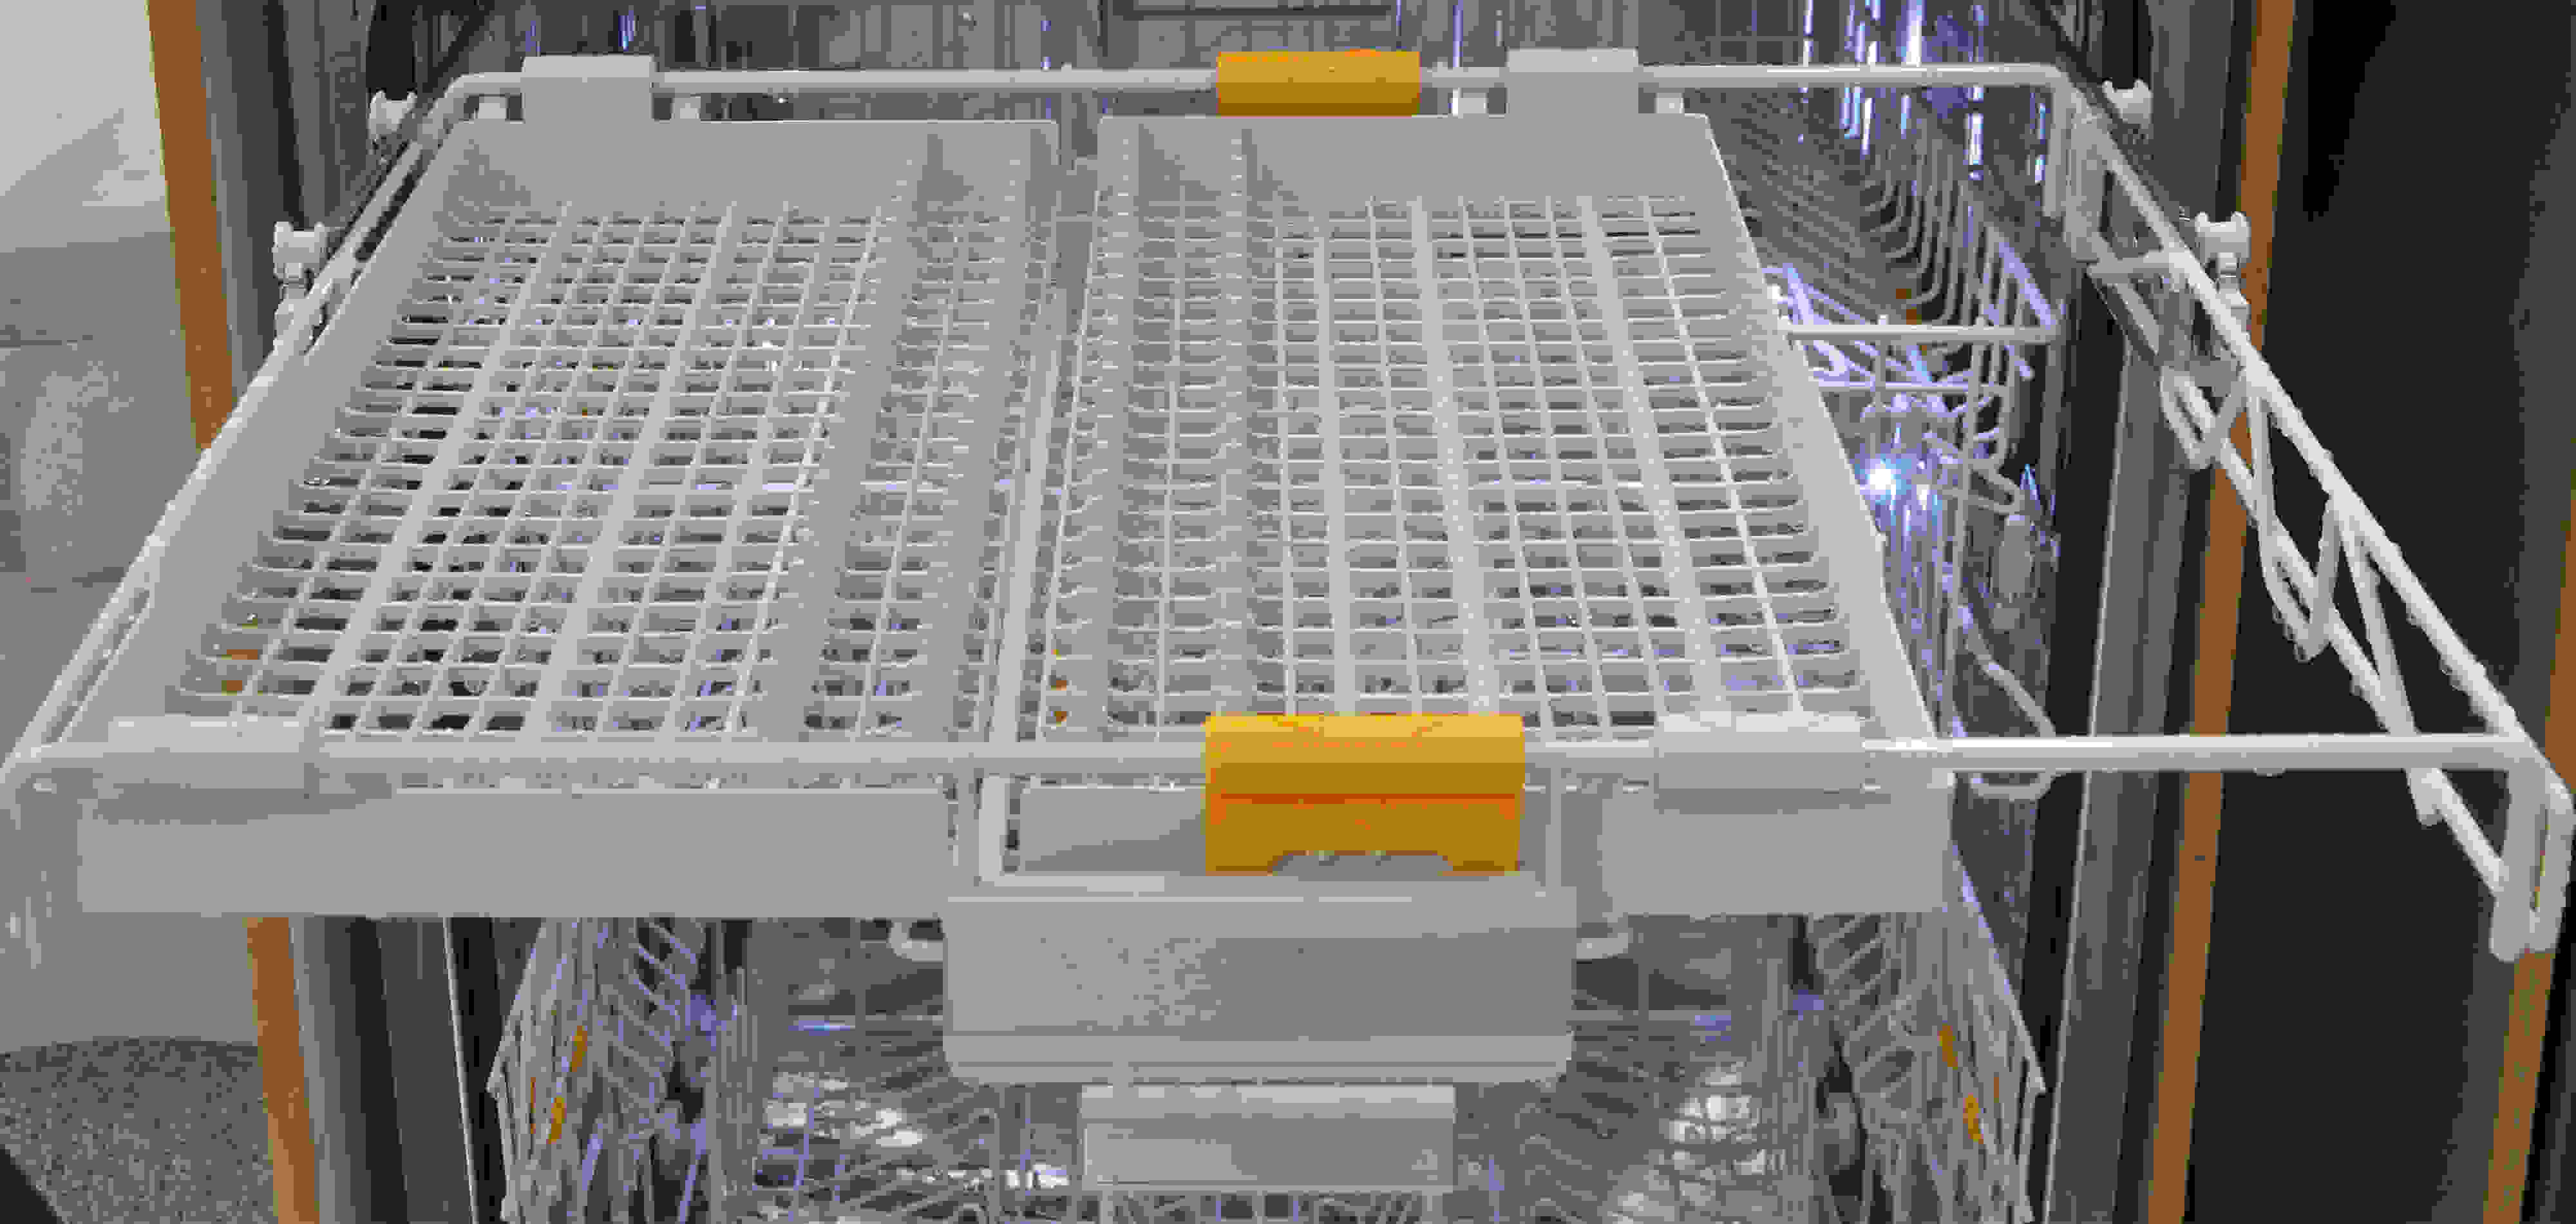 Sliding sections of the third rack out of the way